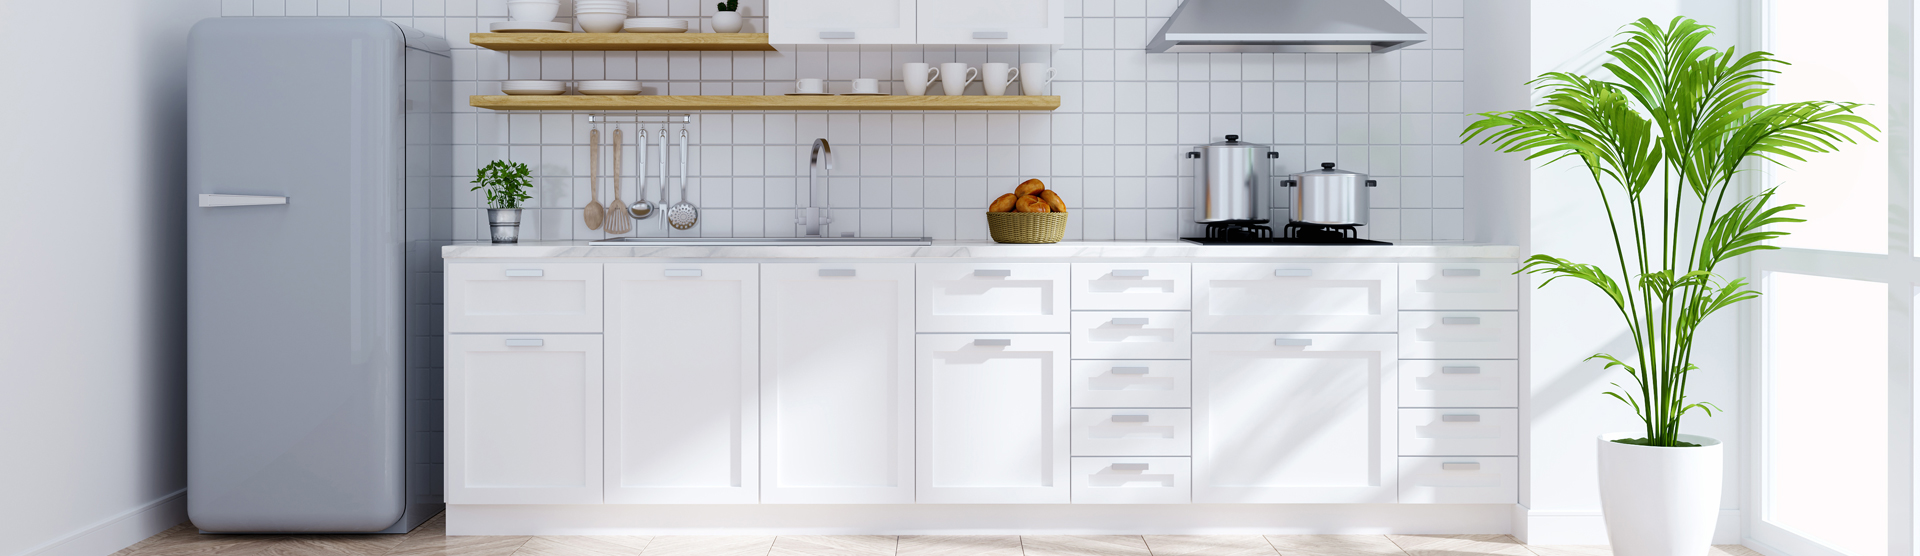 One Wall Kitchen Plans Great Tips From An Expert Architect